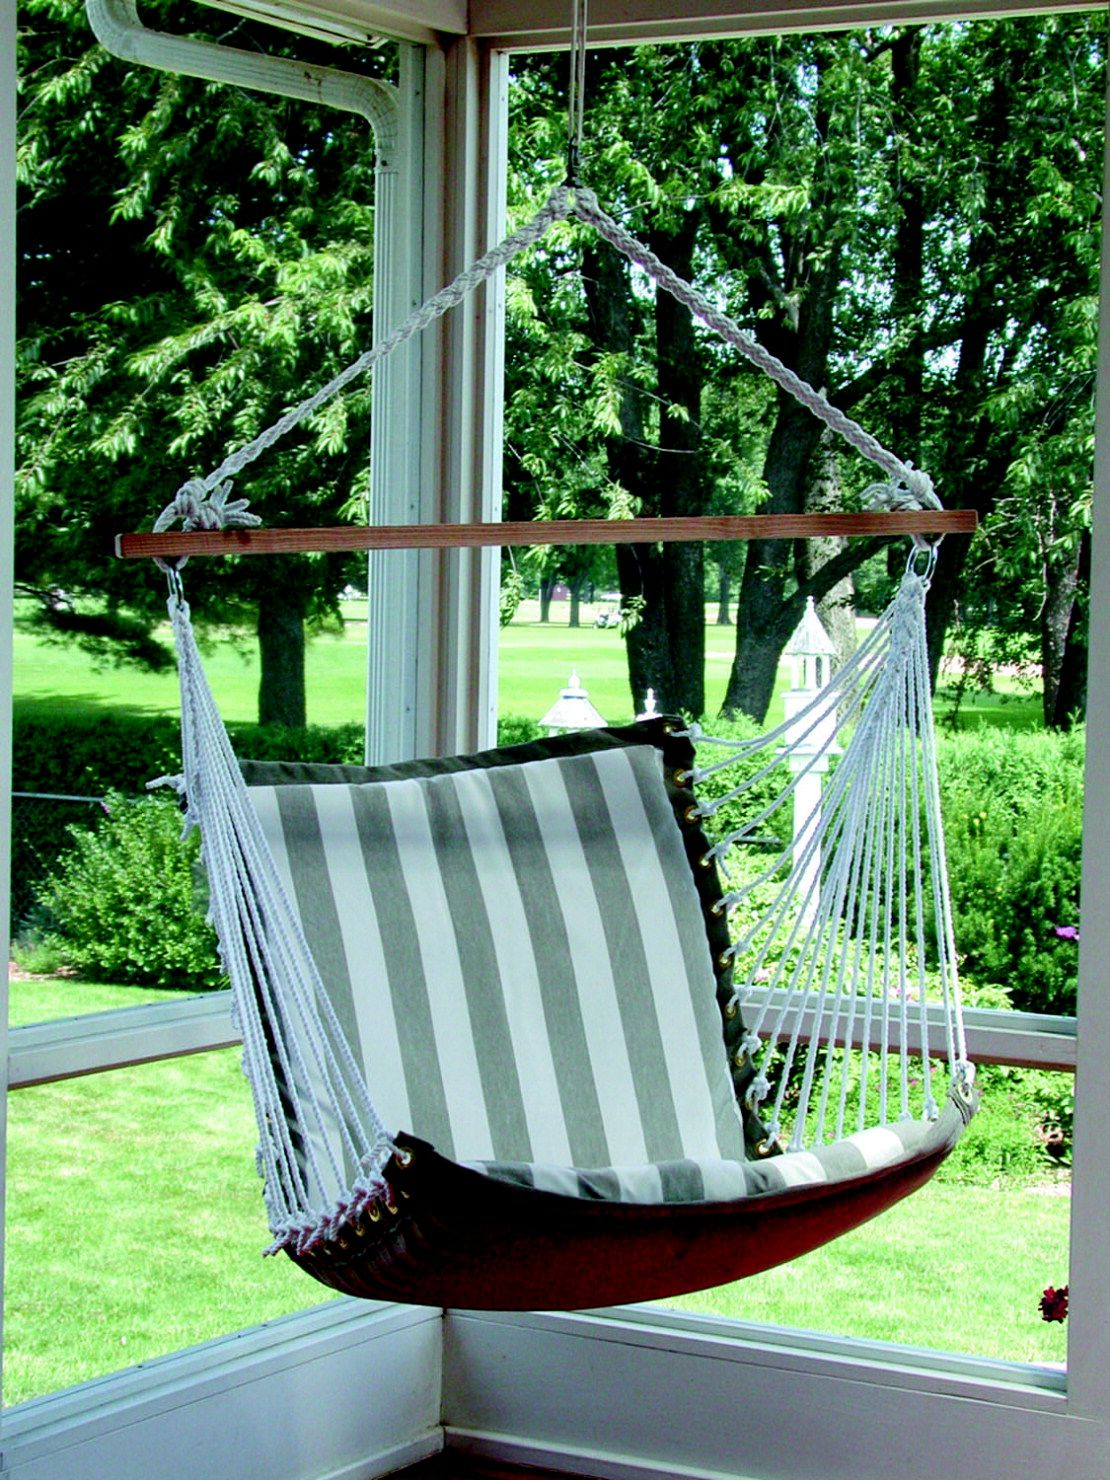 School Specialty Soft Comfort Cushion Hanging Chair 26 X 22 X 28